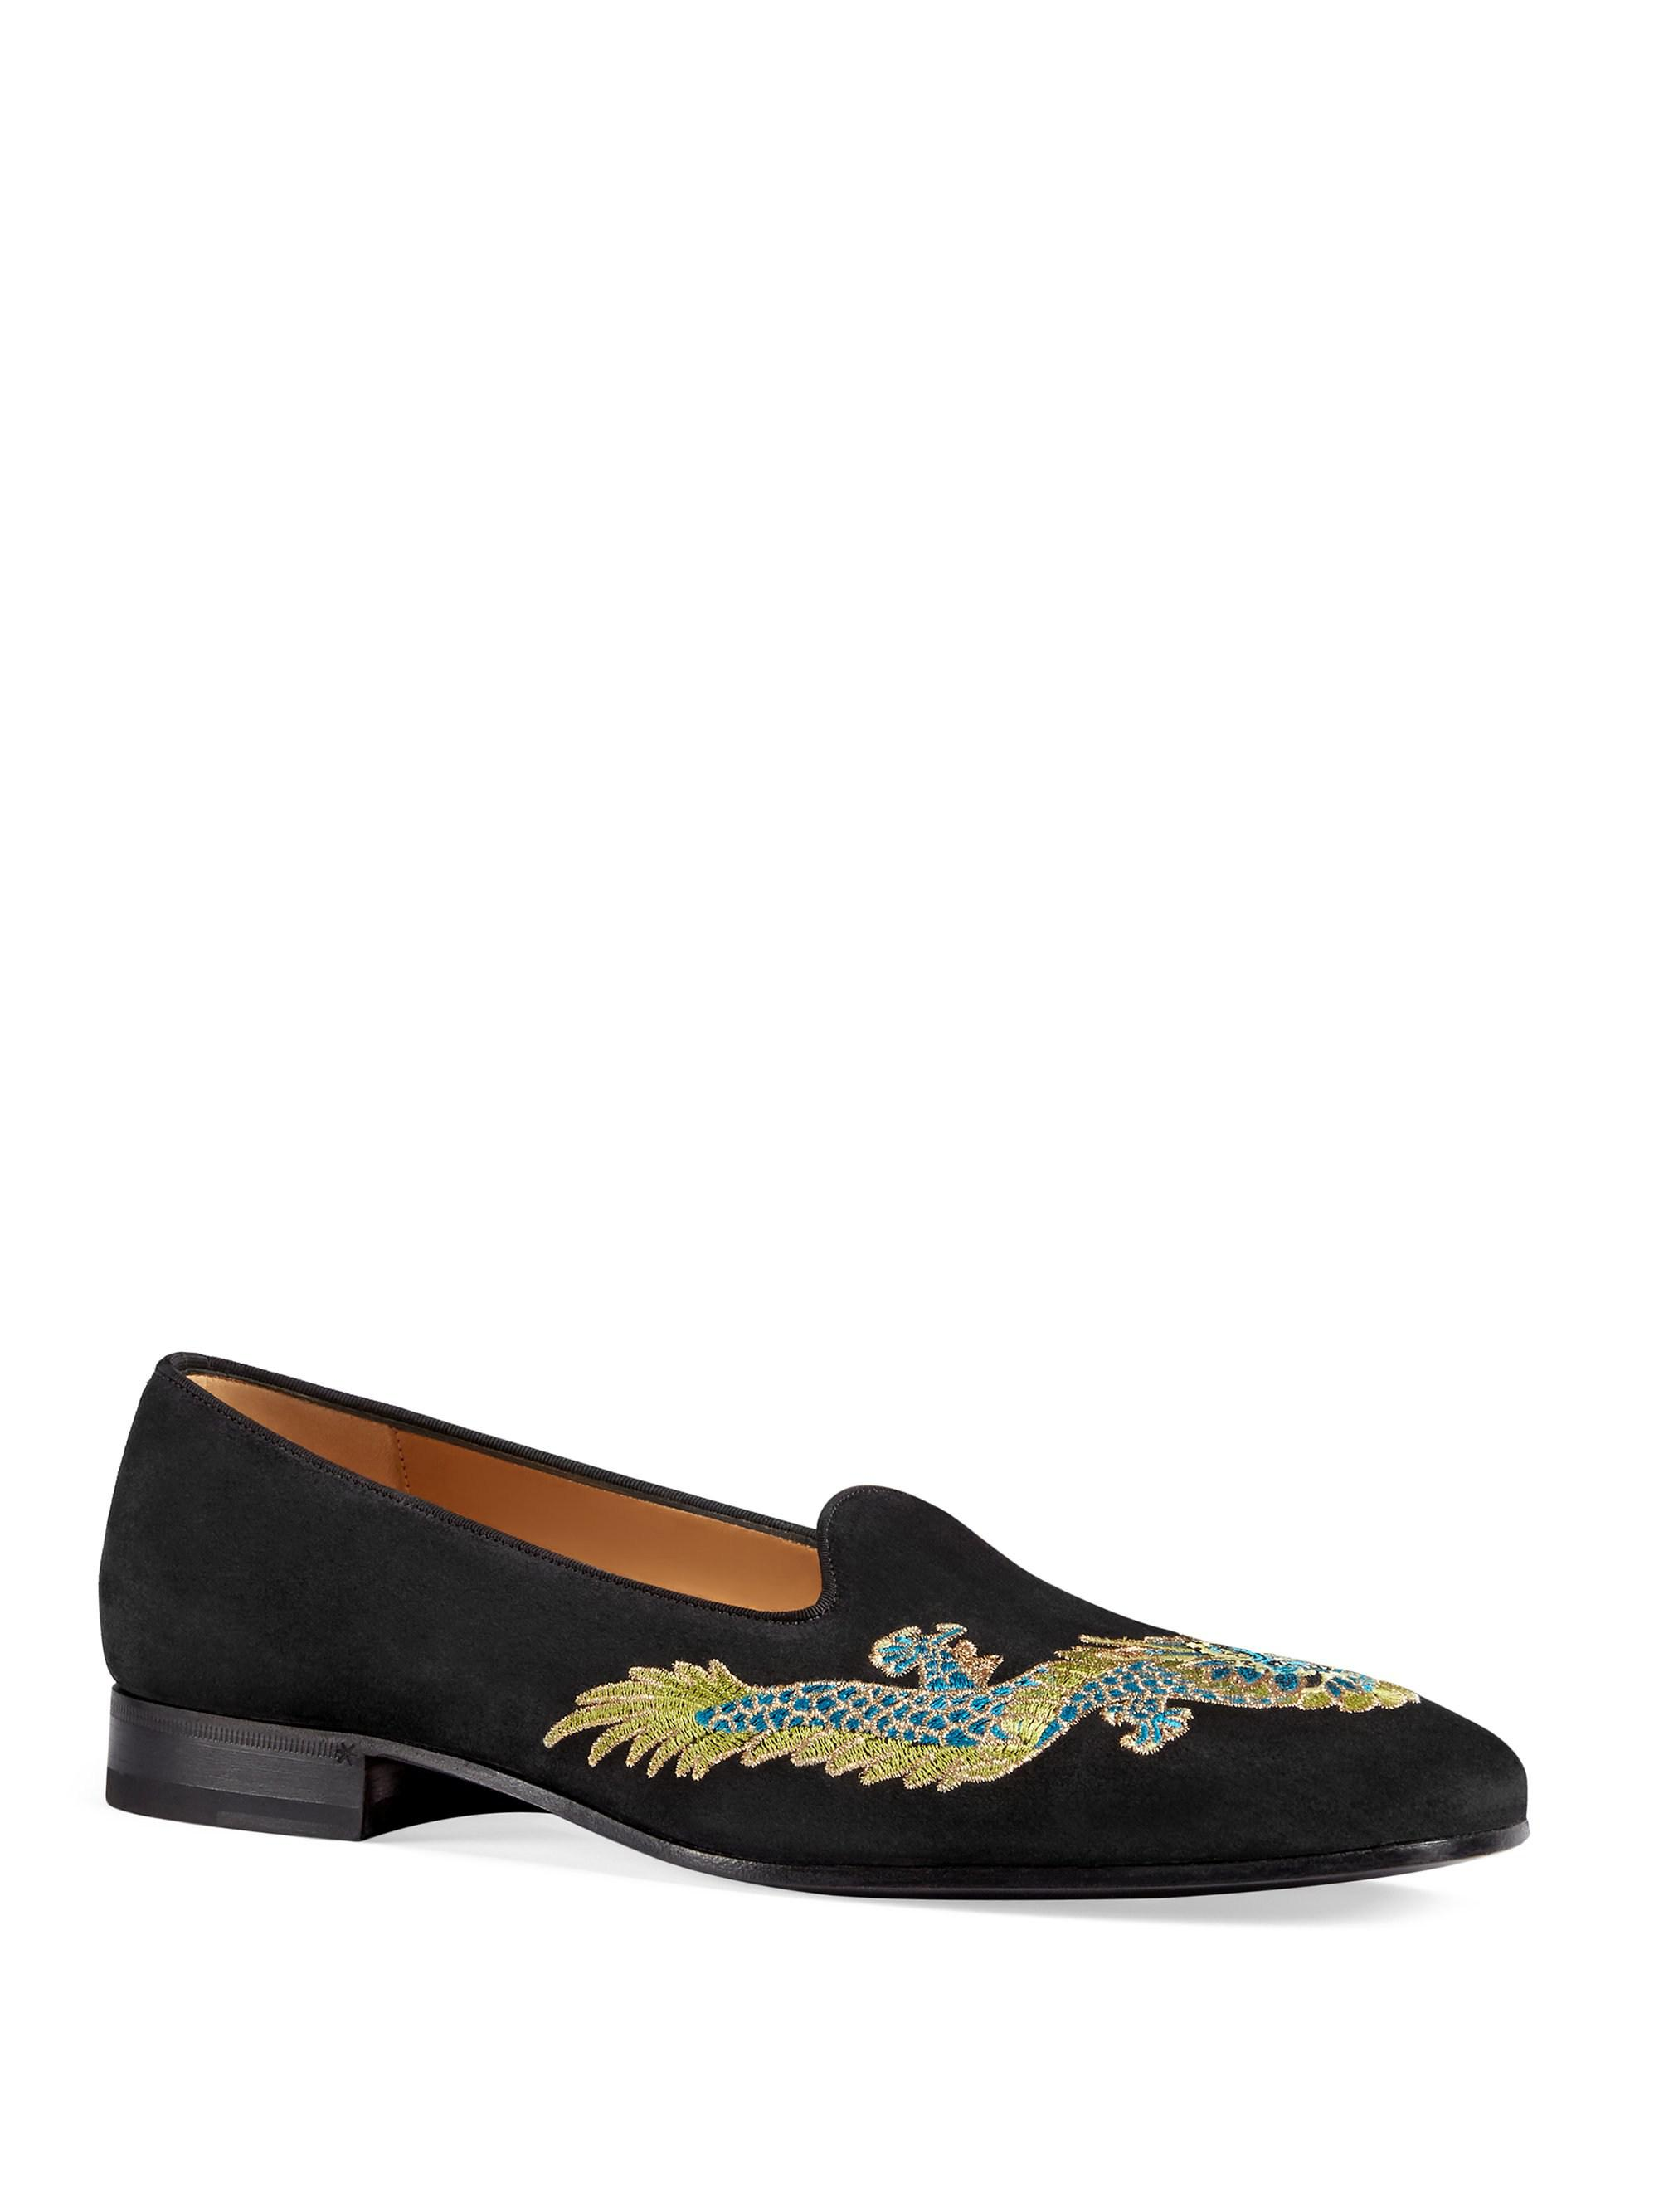 Gucci Suede Loafer With Dragon